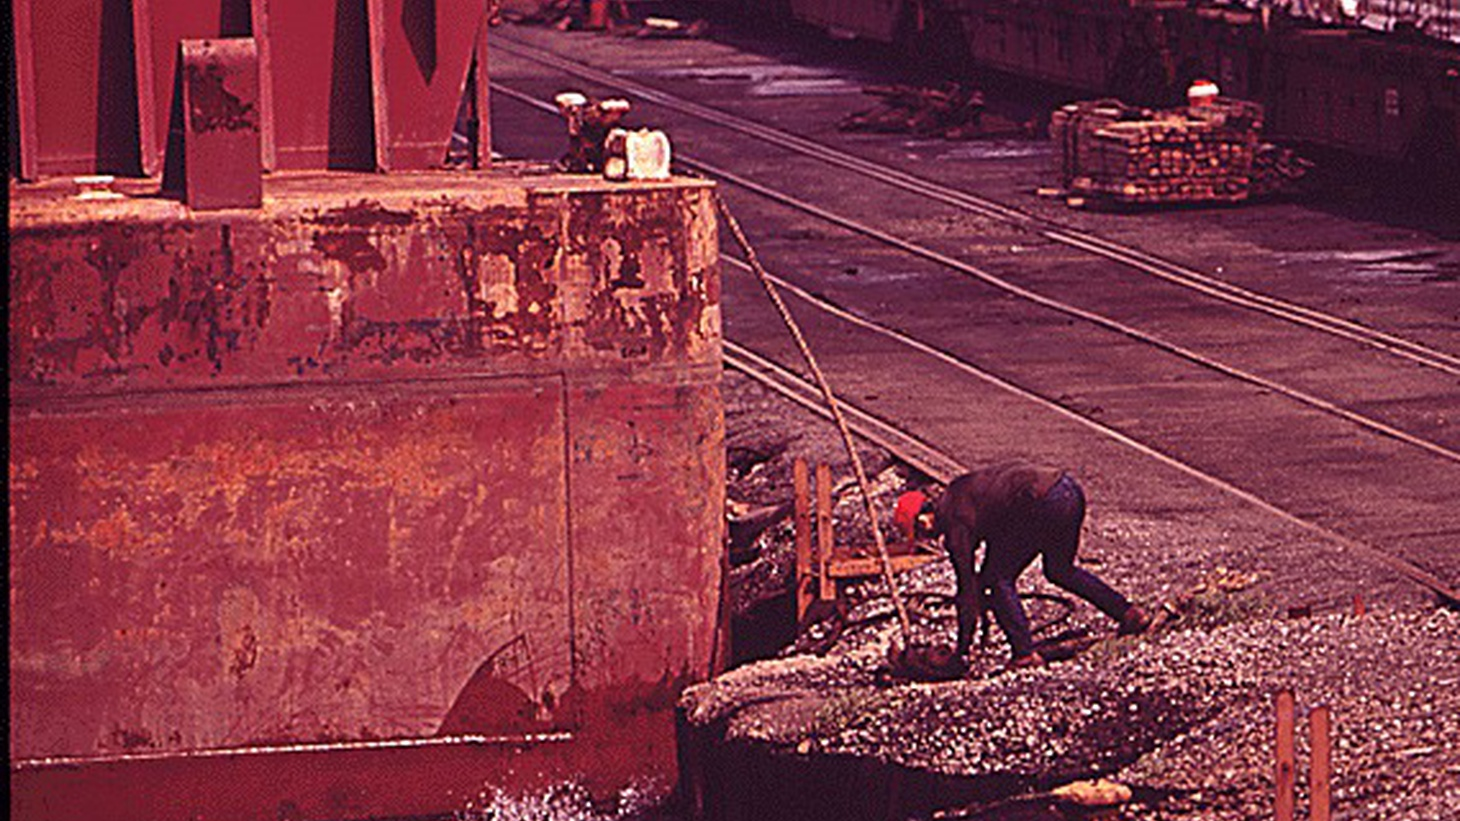 Harold Erickson recalls one hot day unloading steel from deep in the bottom of a ship, when all of the sudden someone offered him an ice cold Manhattan. It's a gestured he'll never forget.       Working the steel dock in 1973. Photo Credit: The Environmental Protection Agency